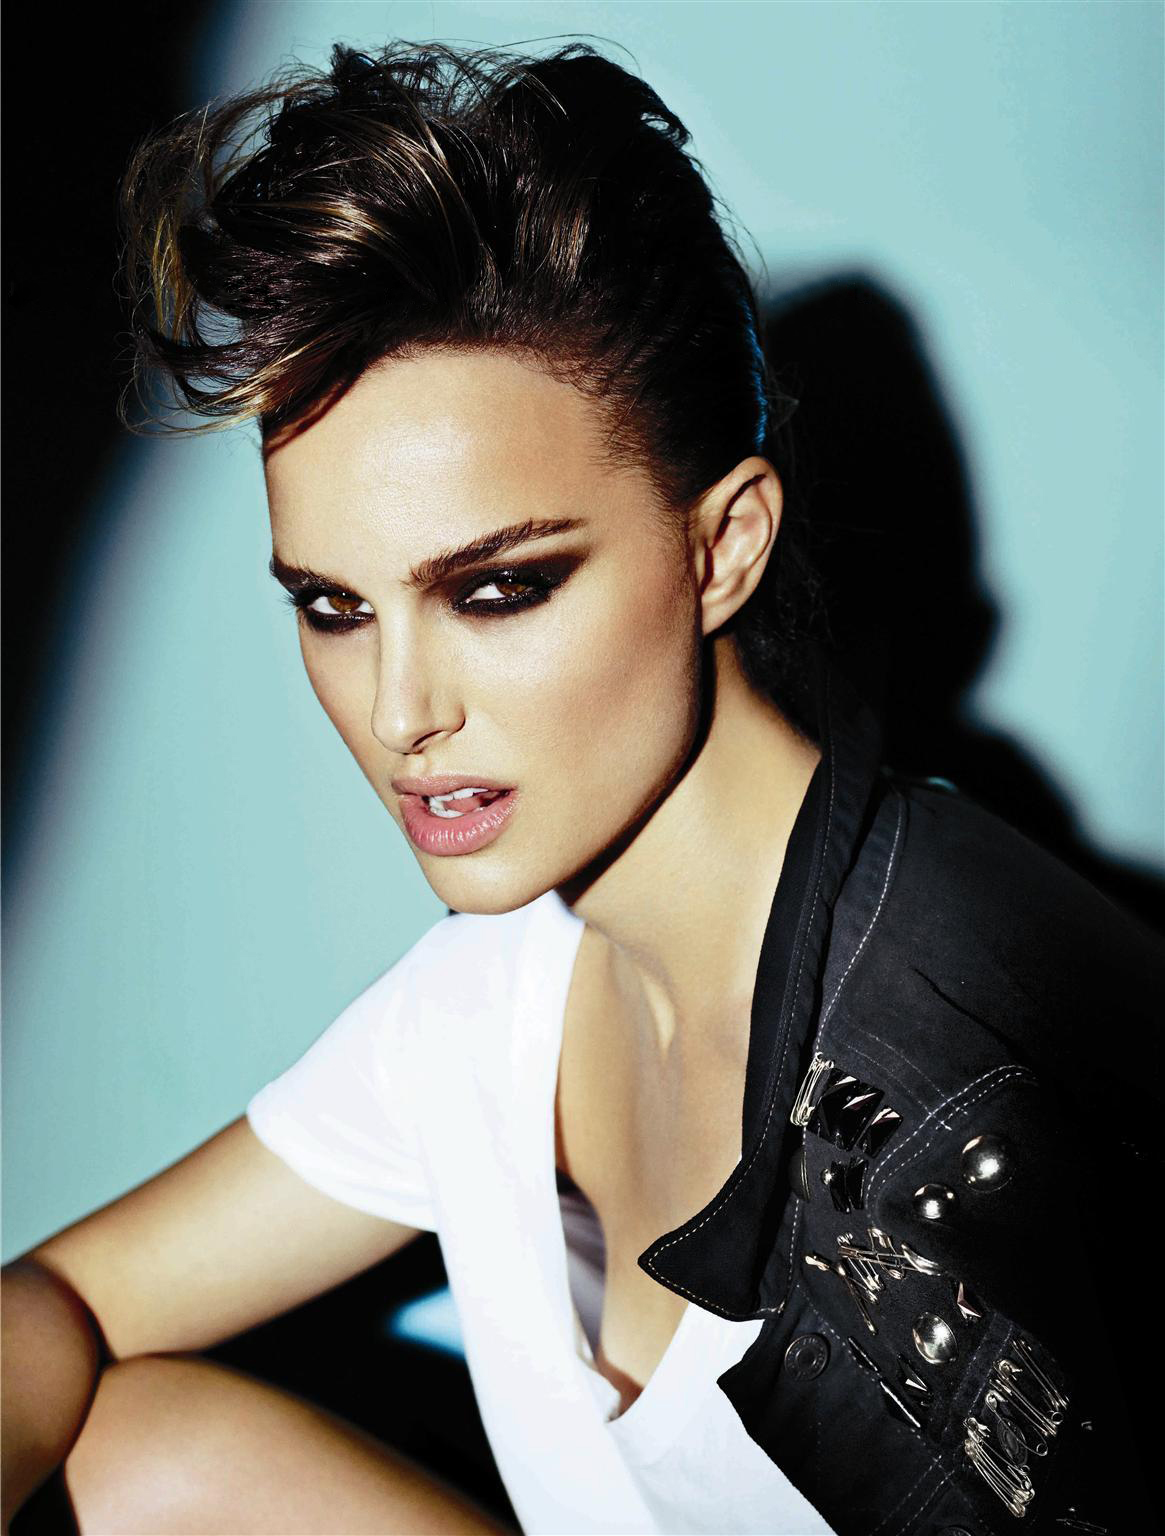 Mario Testino for V Magazine >> Without Watermark ... Natalie Portman